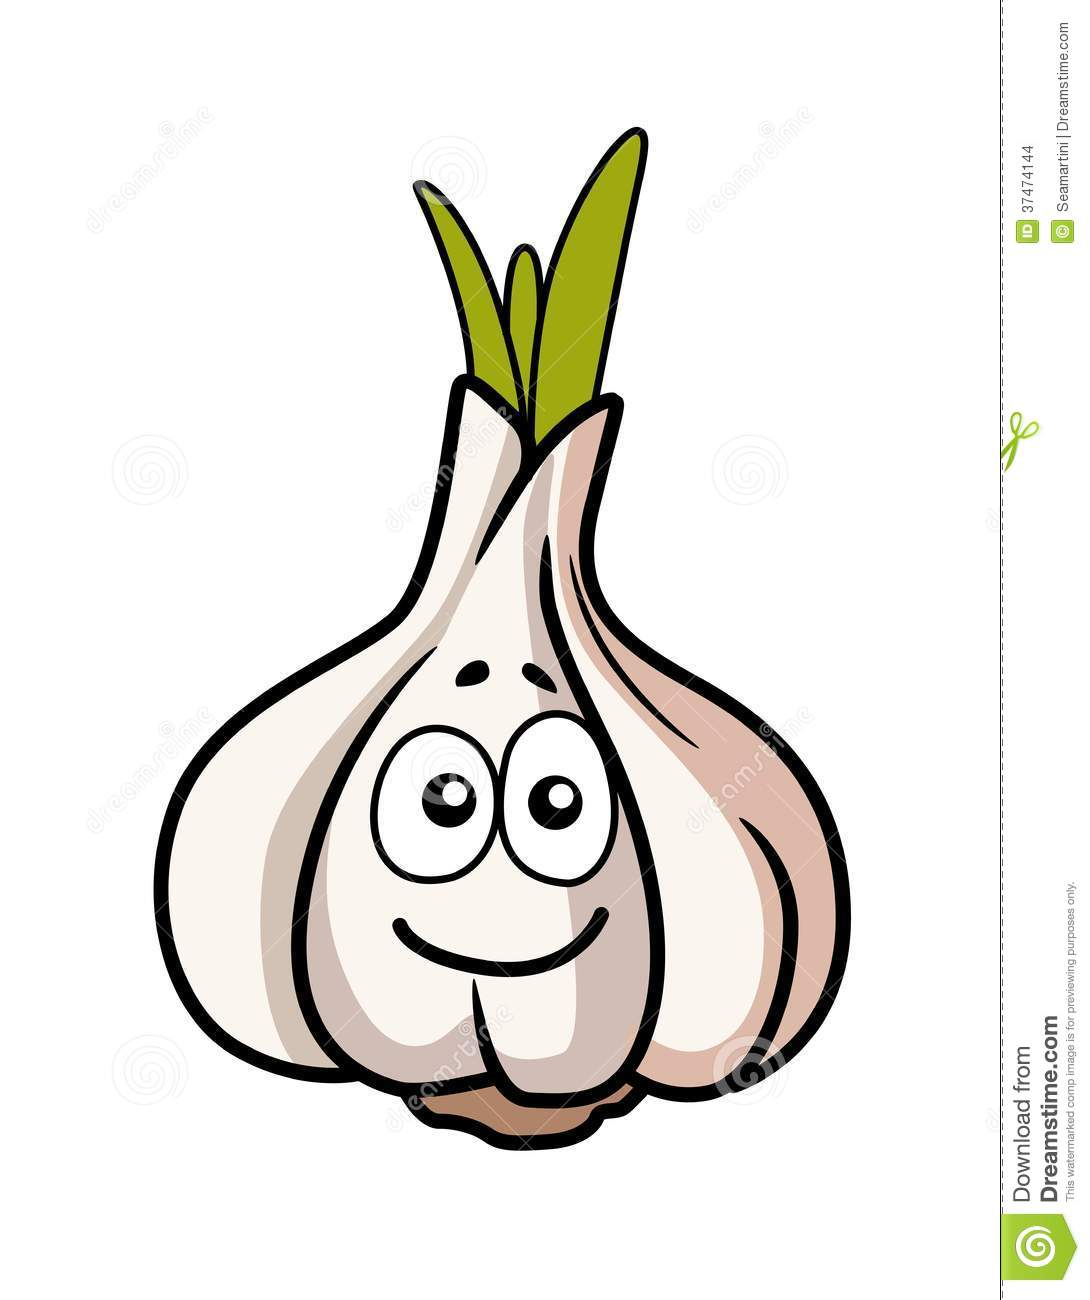 Smiley Faced Garlic Bulb Stock Images - Image: 37474144